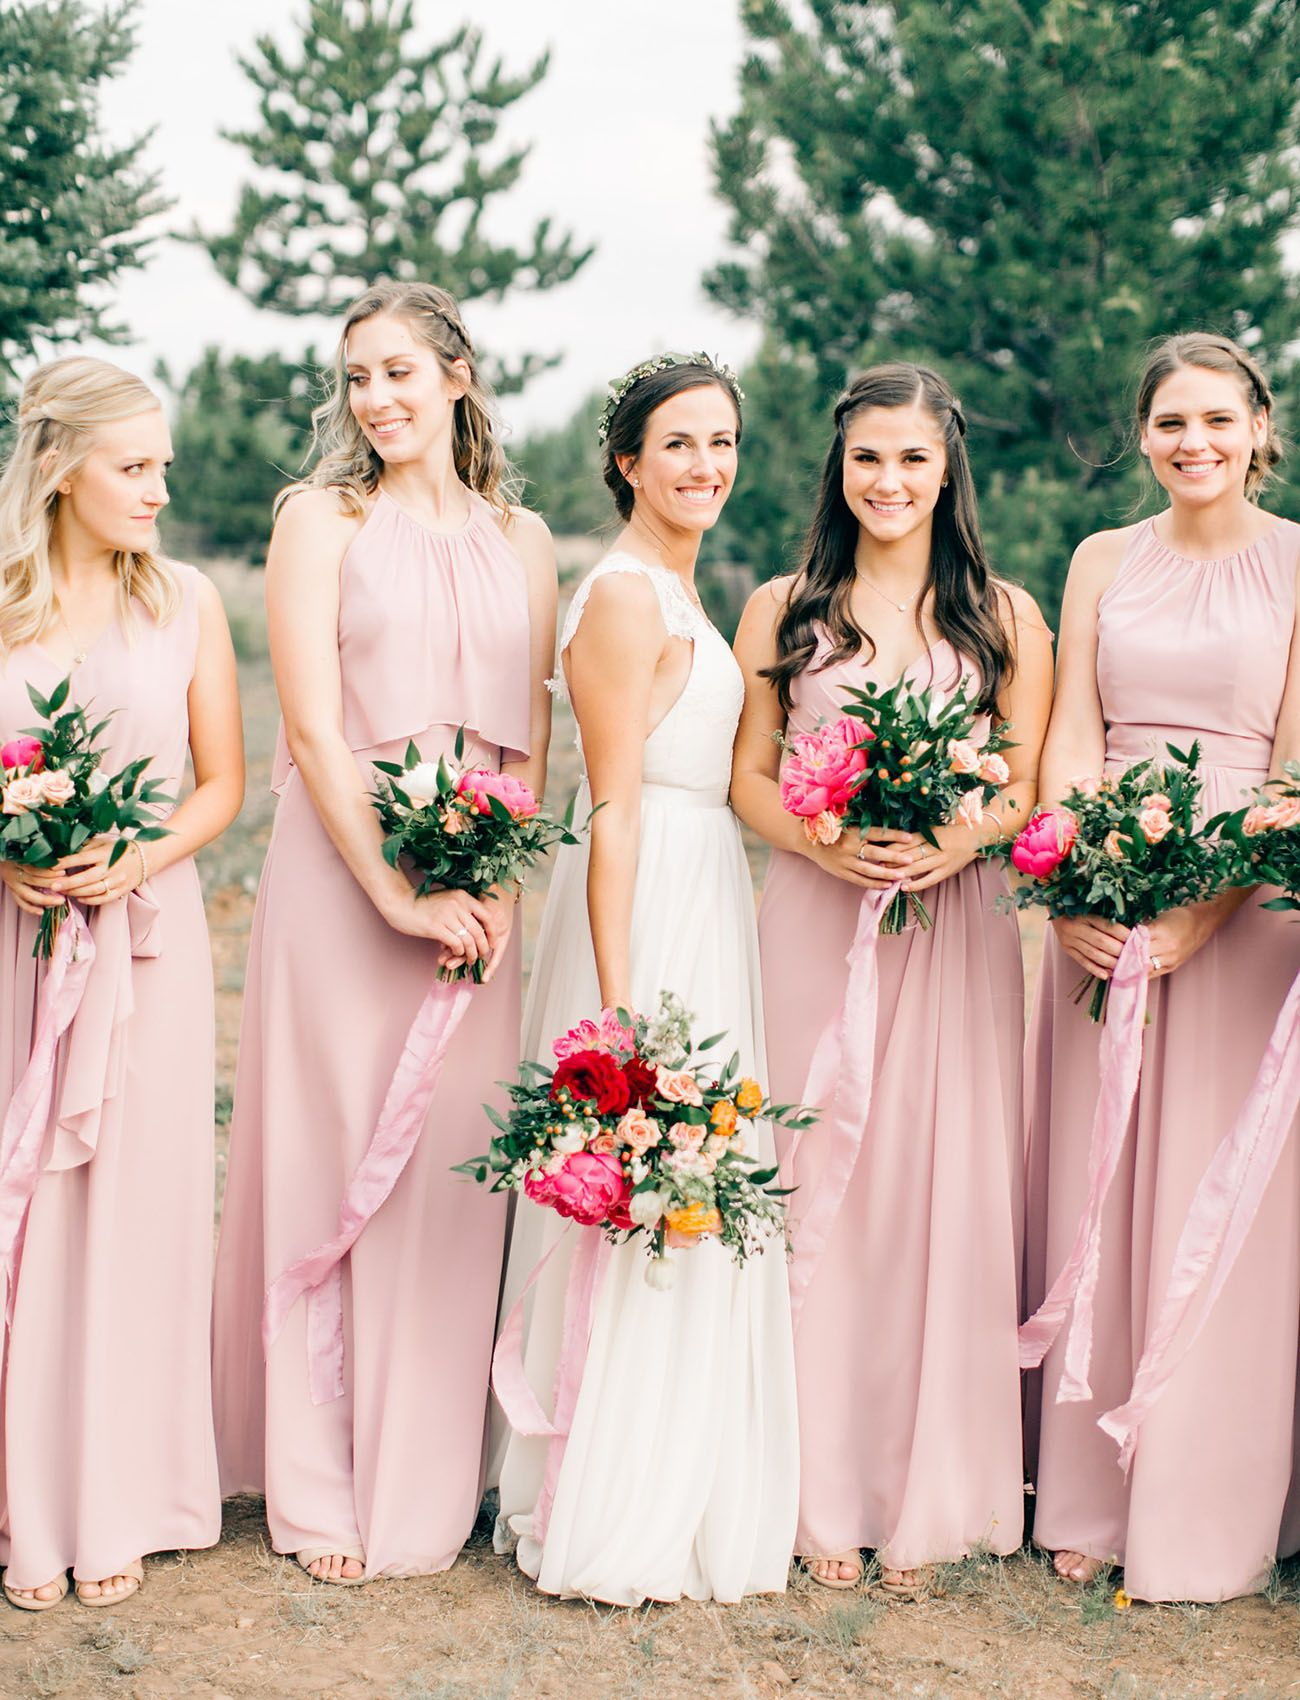 A Whimsical Fairytale: Wedded at the Edge of the Woods | Damas